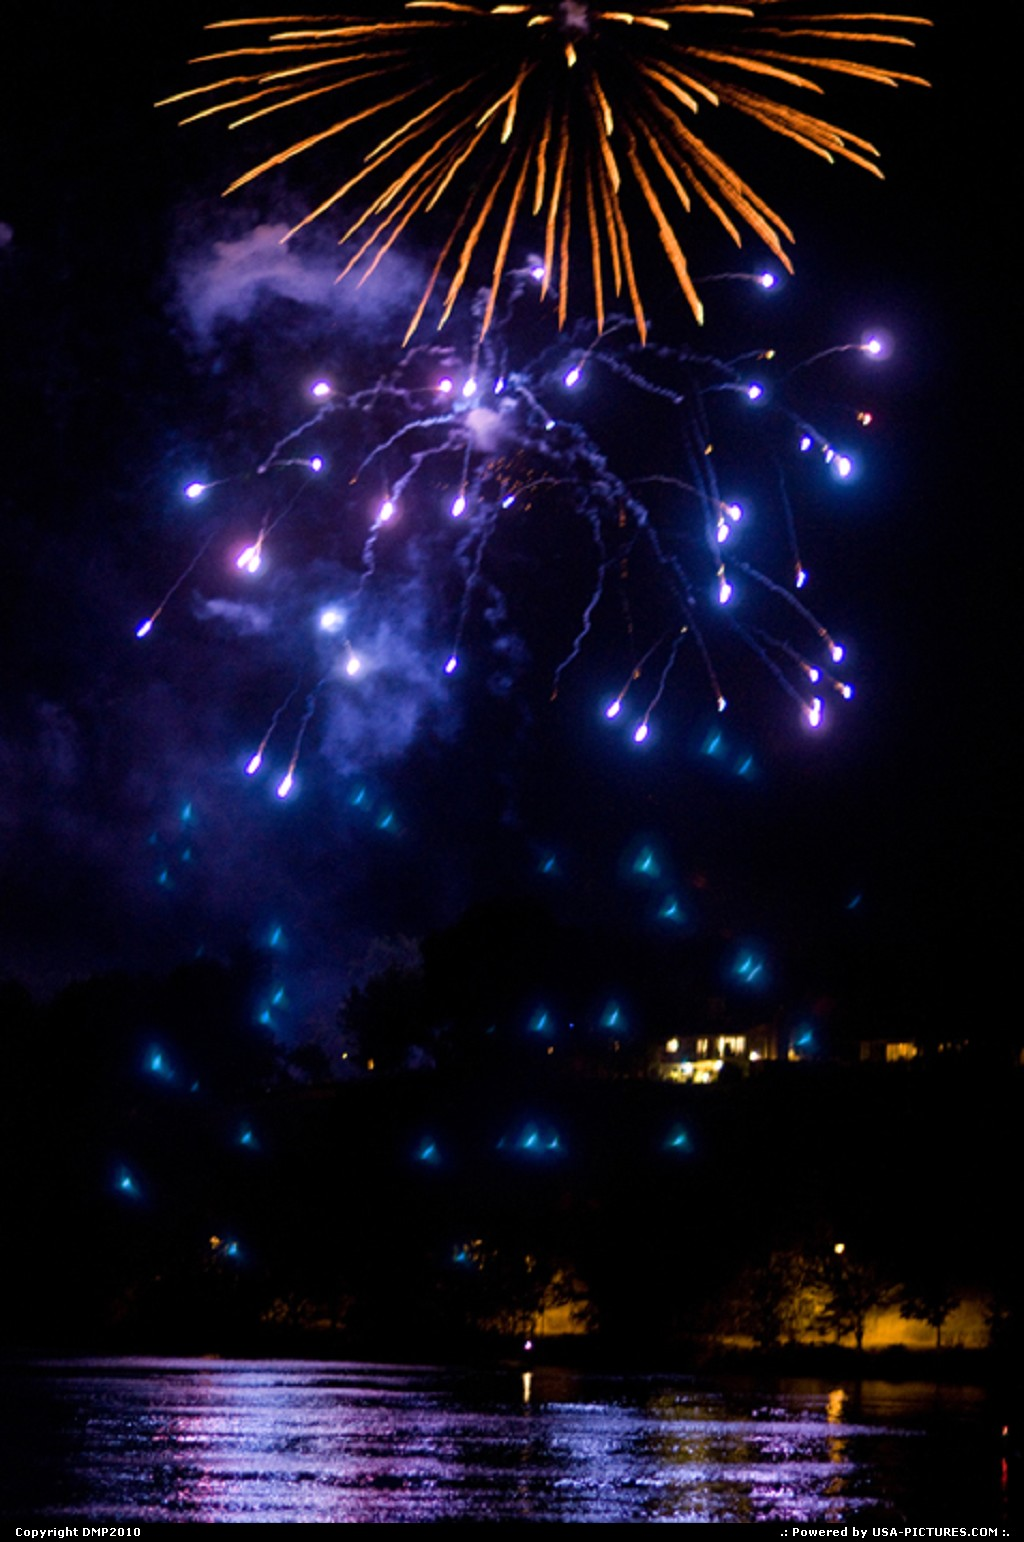 Picture by DMP2010: Lewiston Idaho   lights,fireworks,river,idaho,colorful,sky